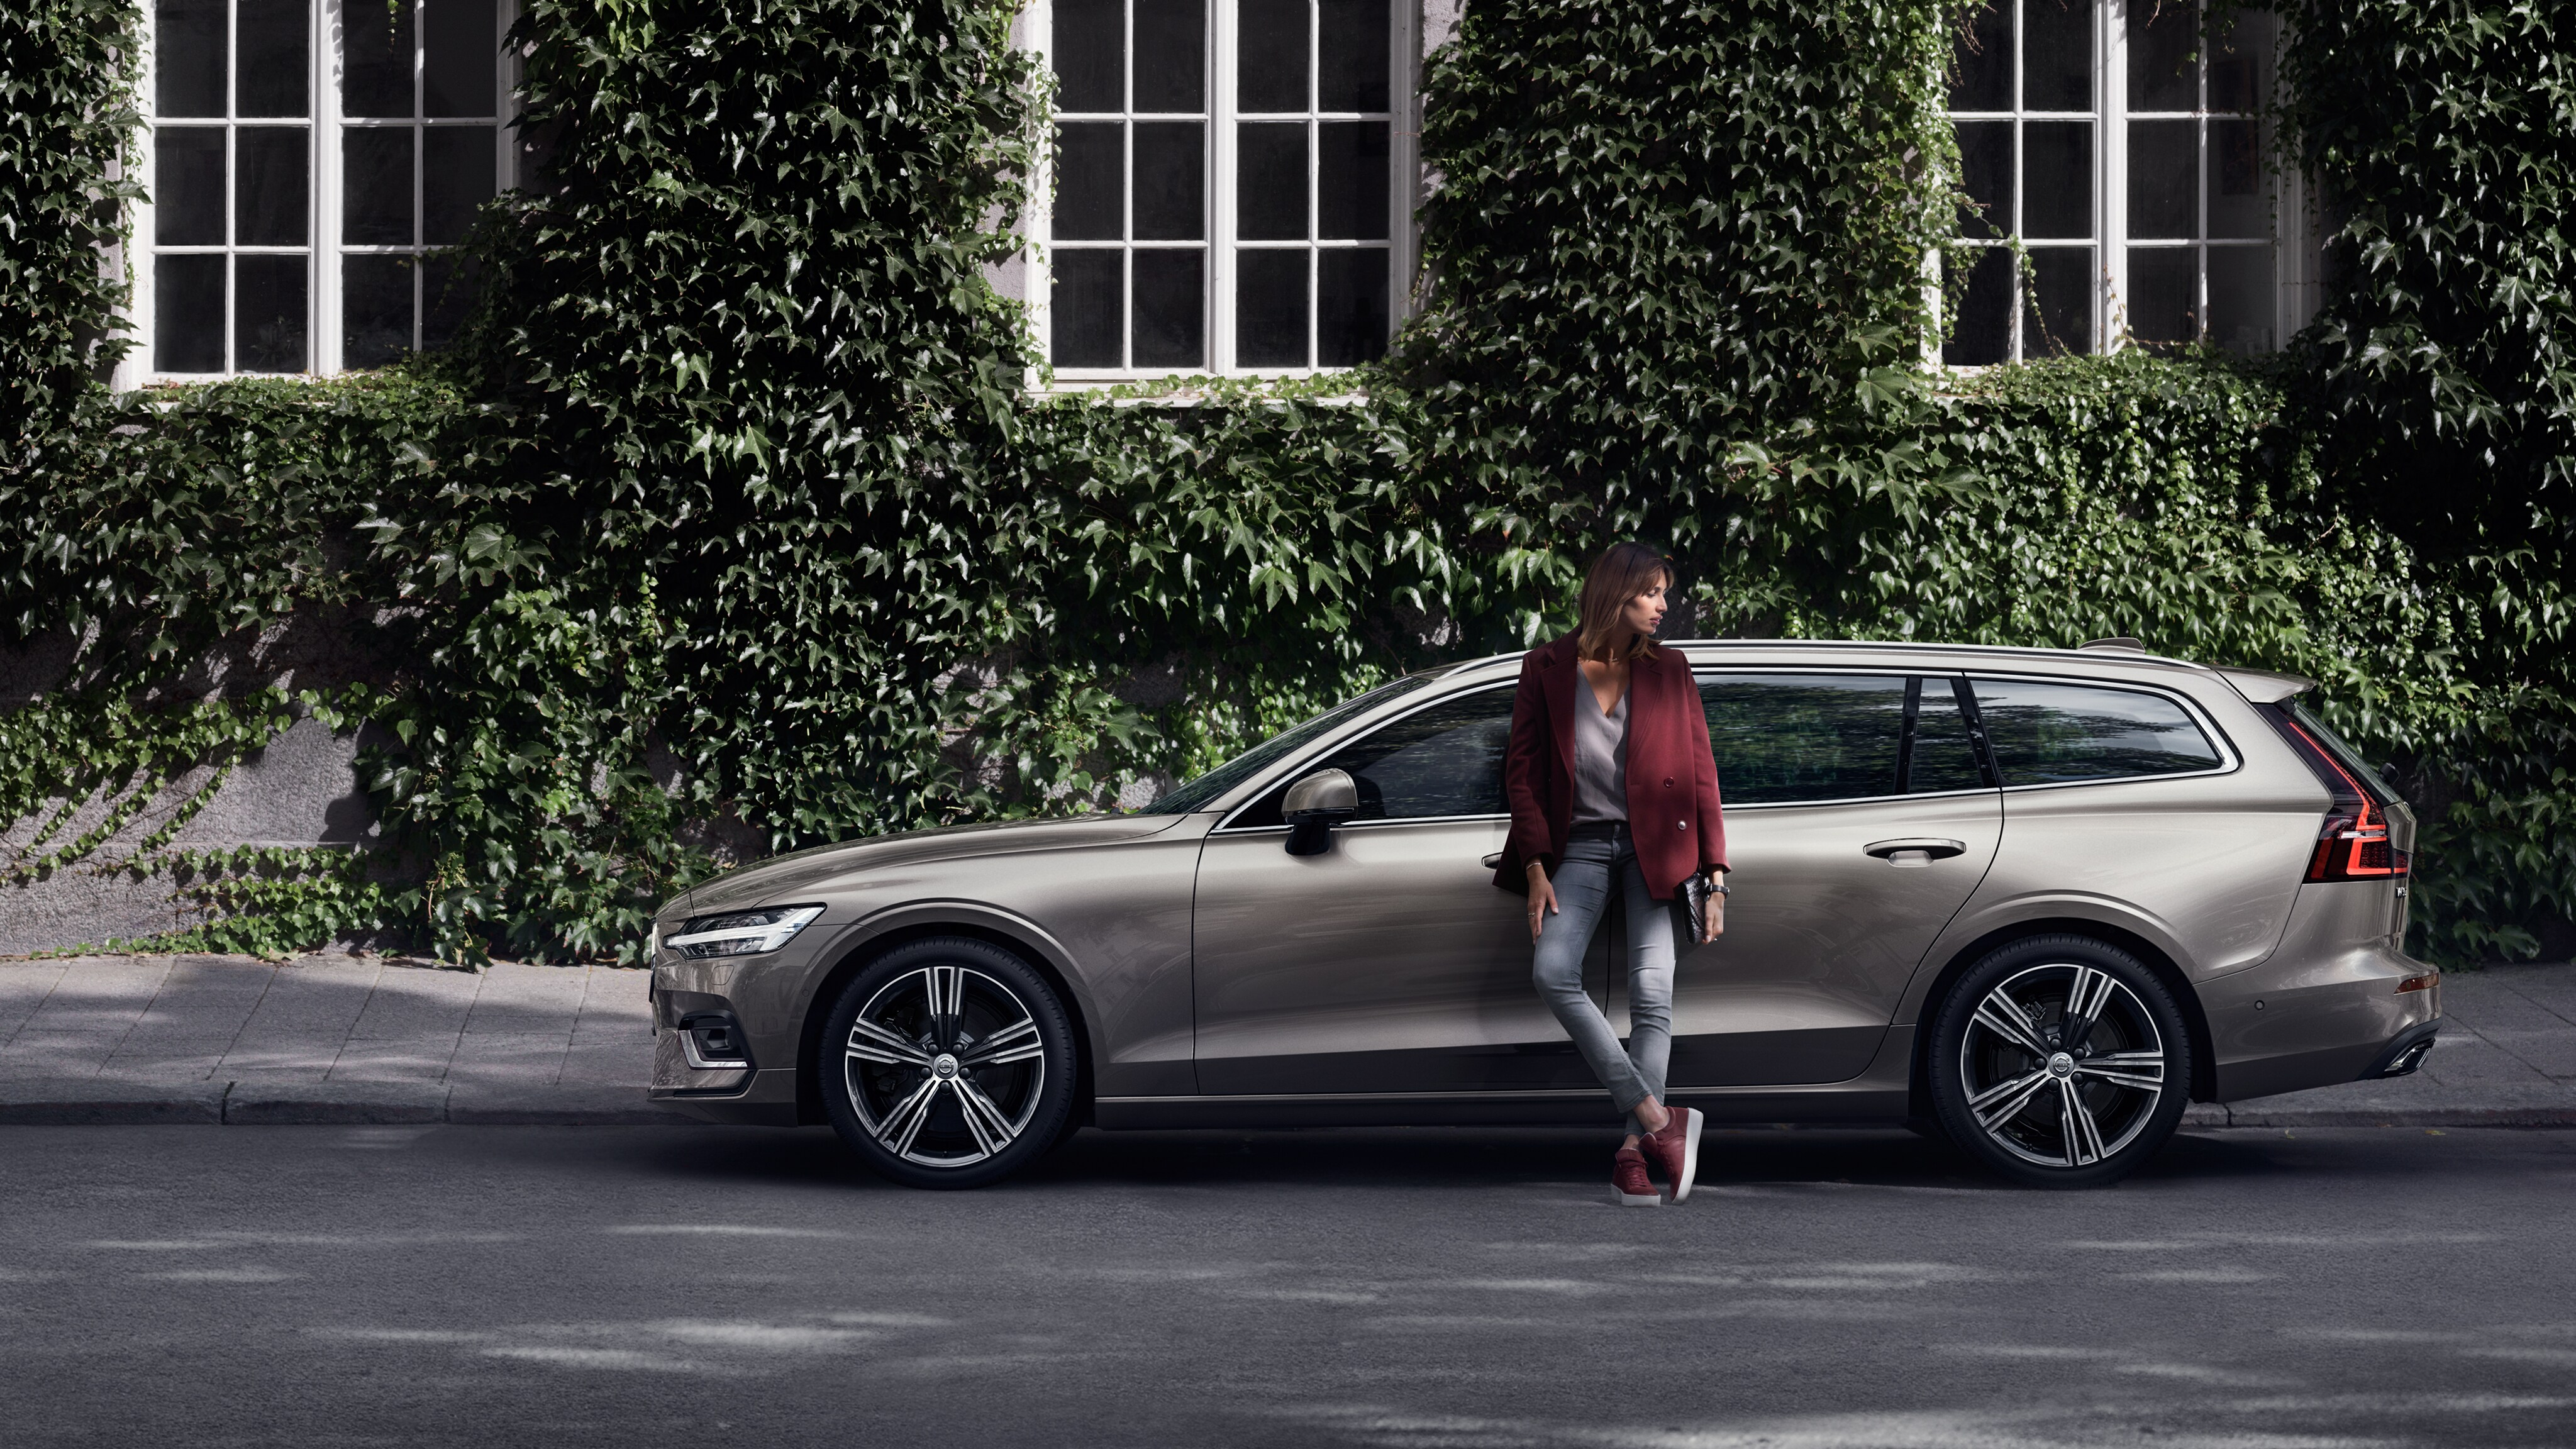 The new Volvo V60 estate